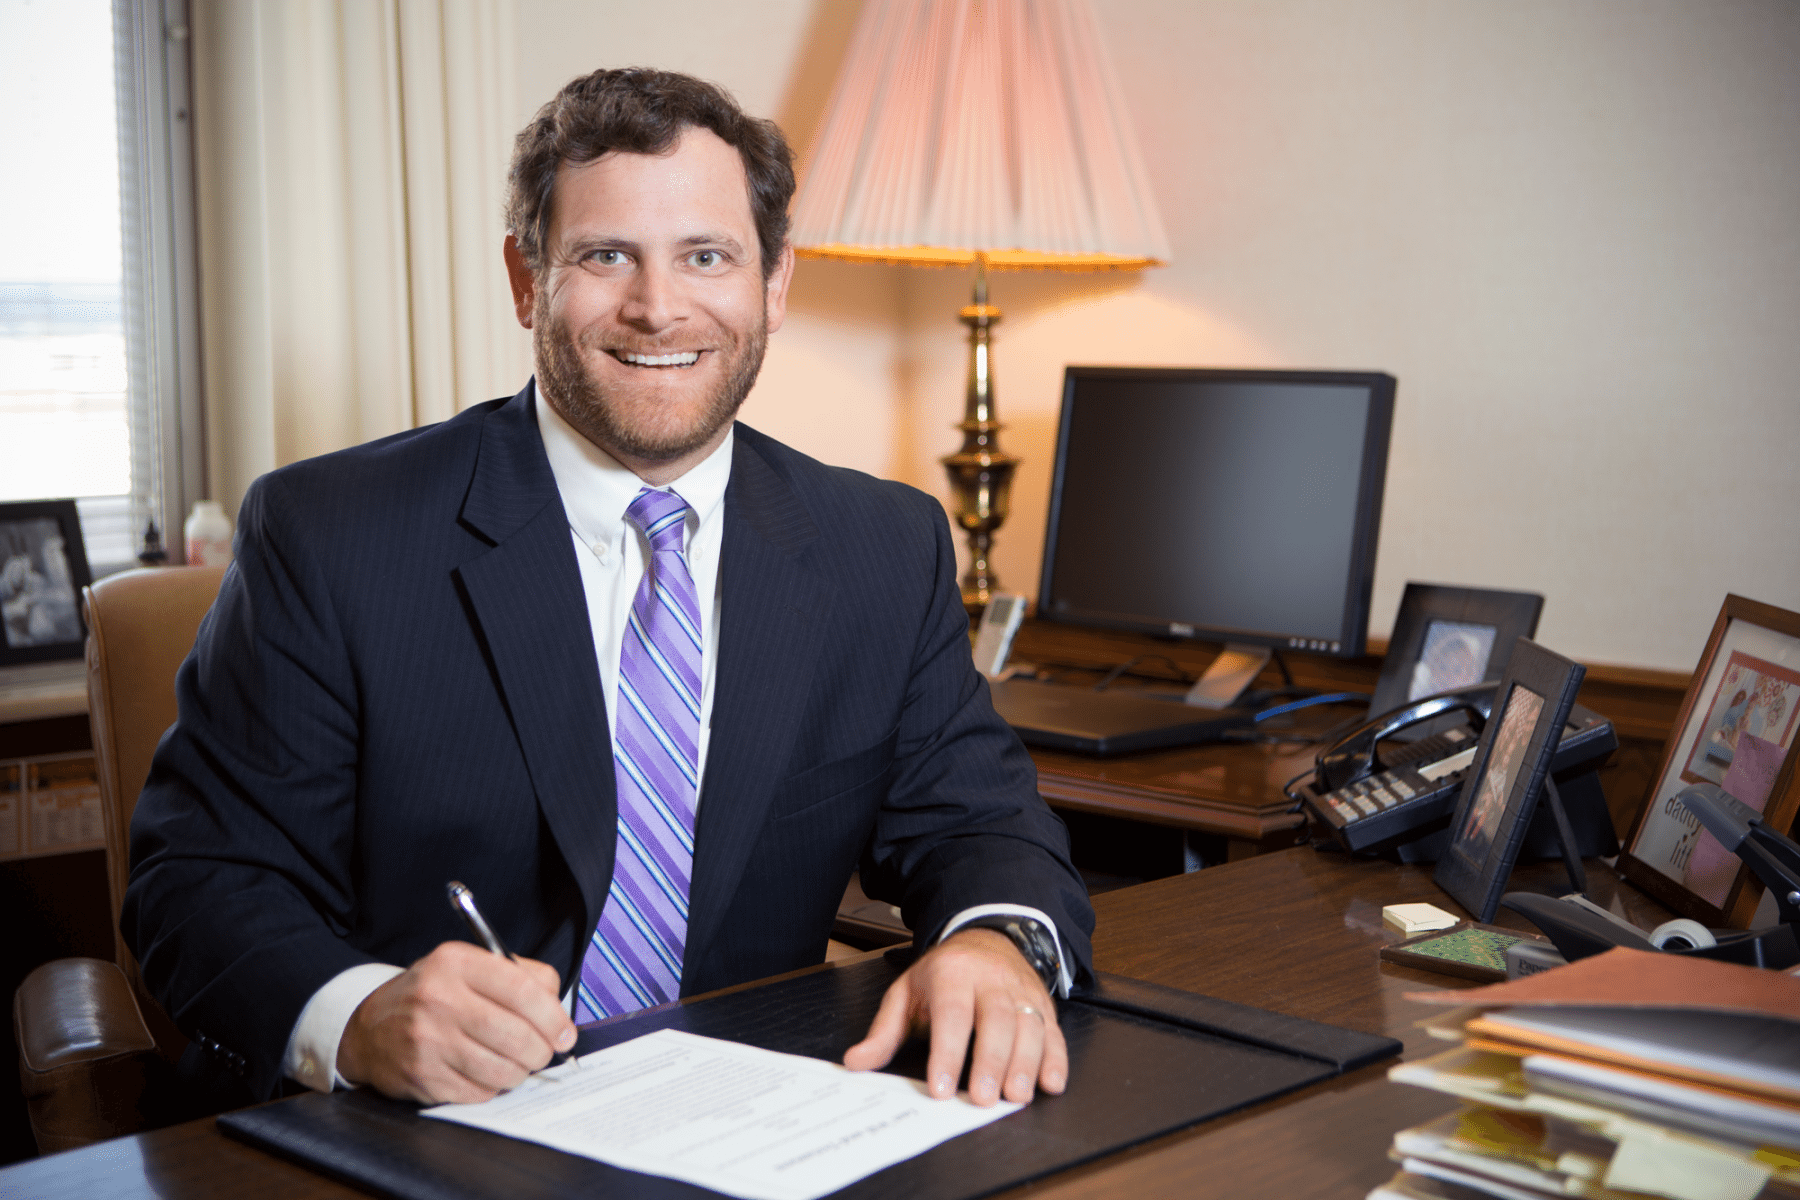 S. David Lipsey, Knoxville Attorney with Lipsey, Morrison, Waller, & Lipsey, P.C.